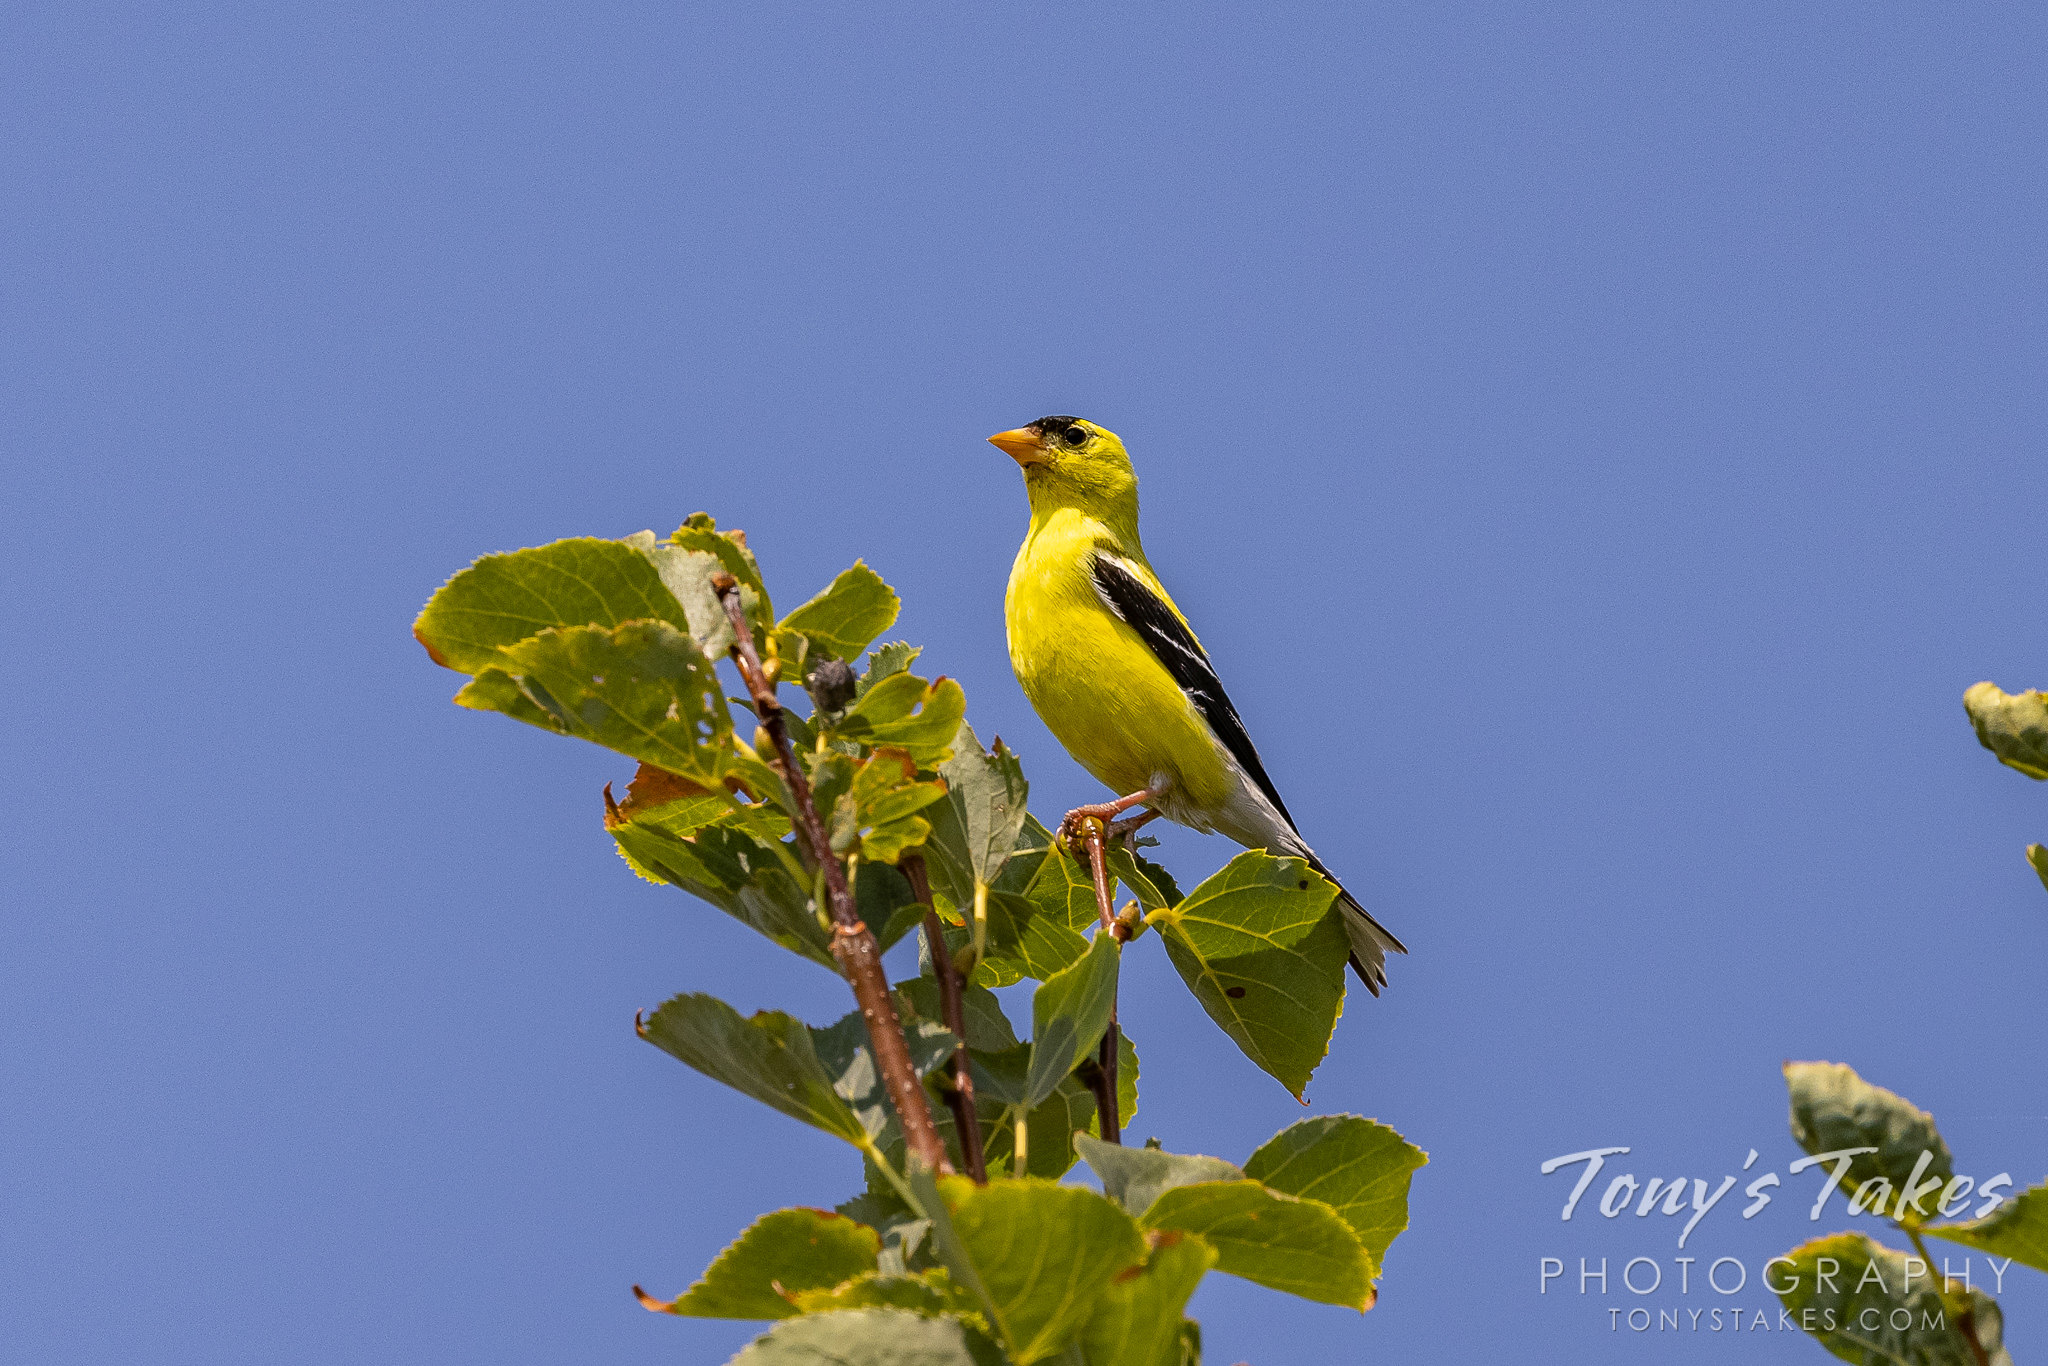 An American goldfinch hangs out on top of a tree. (© Tony's Takes)